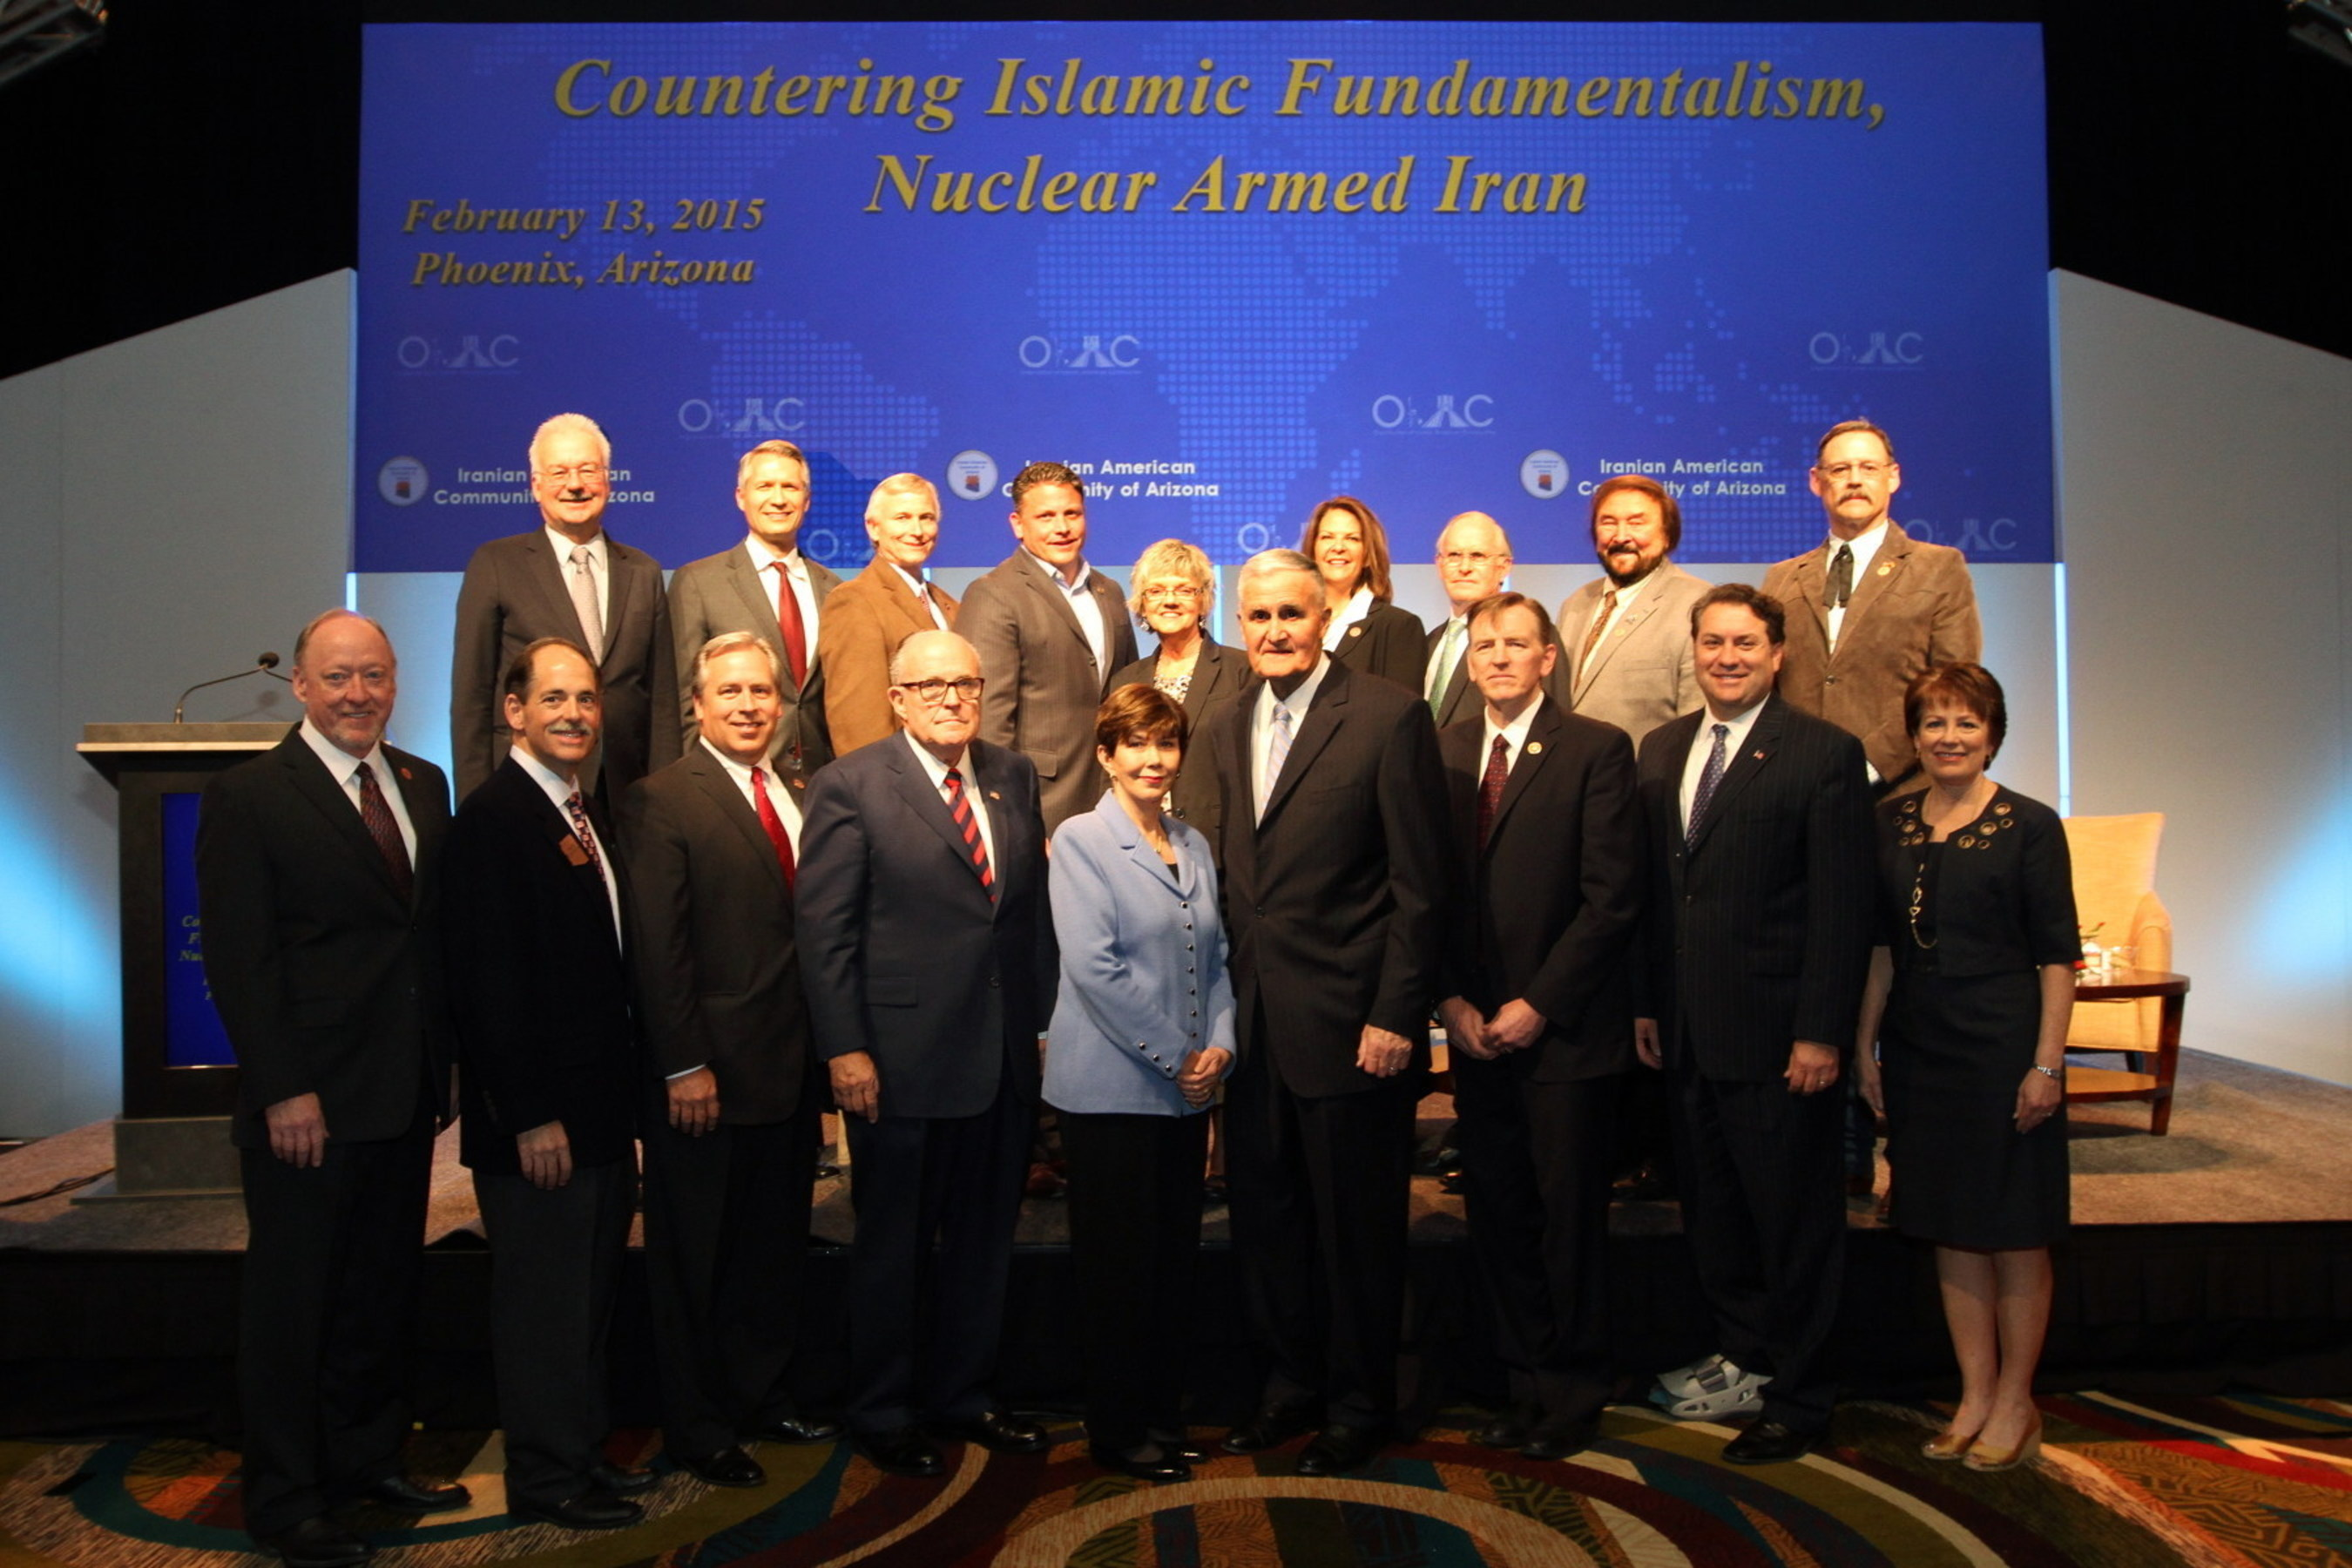 """Mayor Rudy Giuliani, General Hugh Shelton and Linda Chavez joined Prominent Arizona officials to discuss """"Countering Islamic Fundamentalism, a Nuclear-Armed Iran"""" on Feb. 13, 2015 in Phoenix, AZ."""